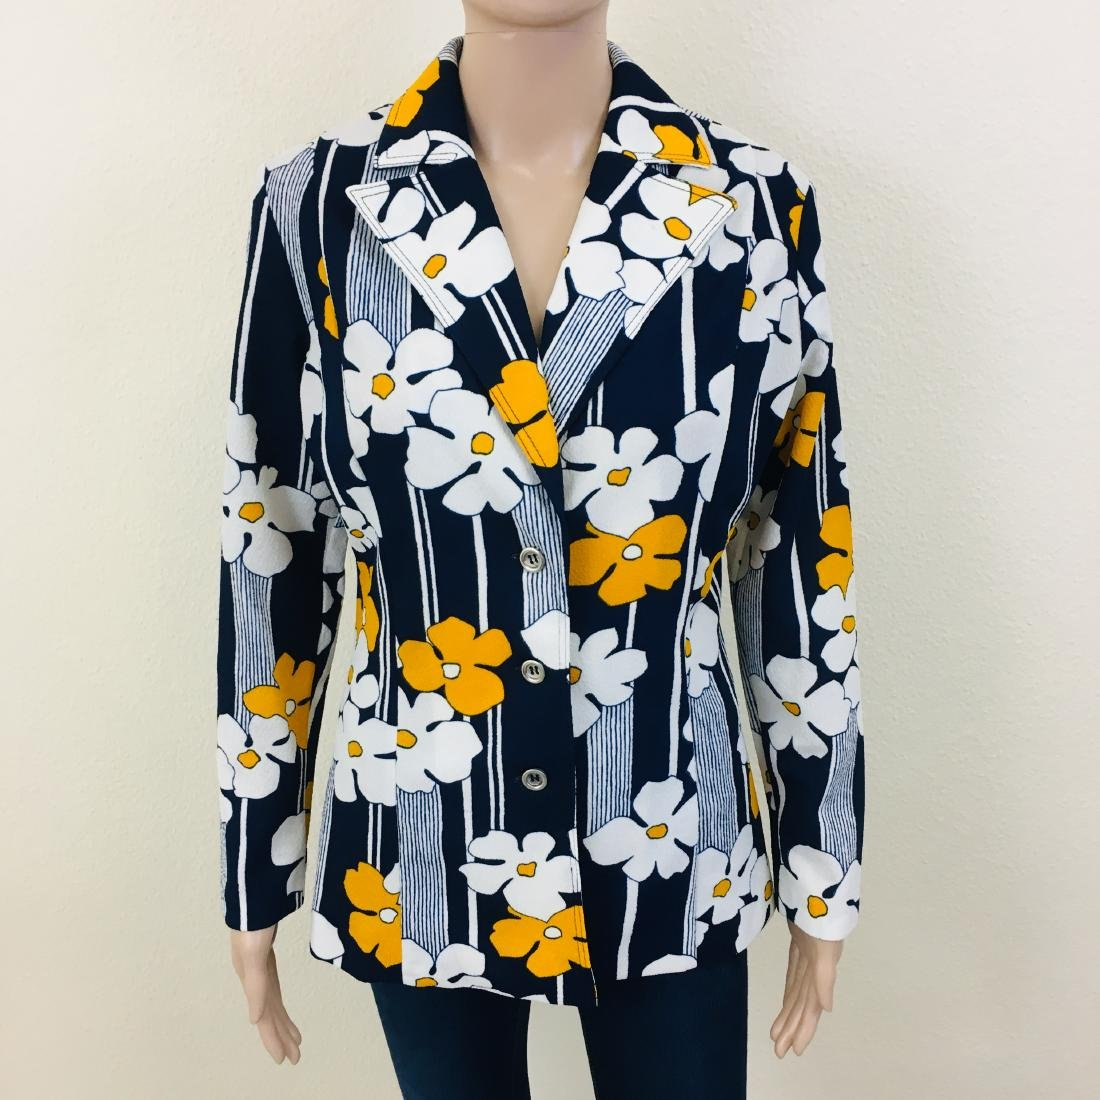 Vintage Women's Navy Blue Flower Blazer Jacket - 4